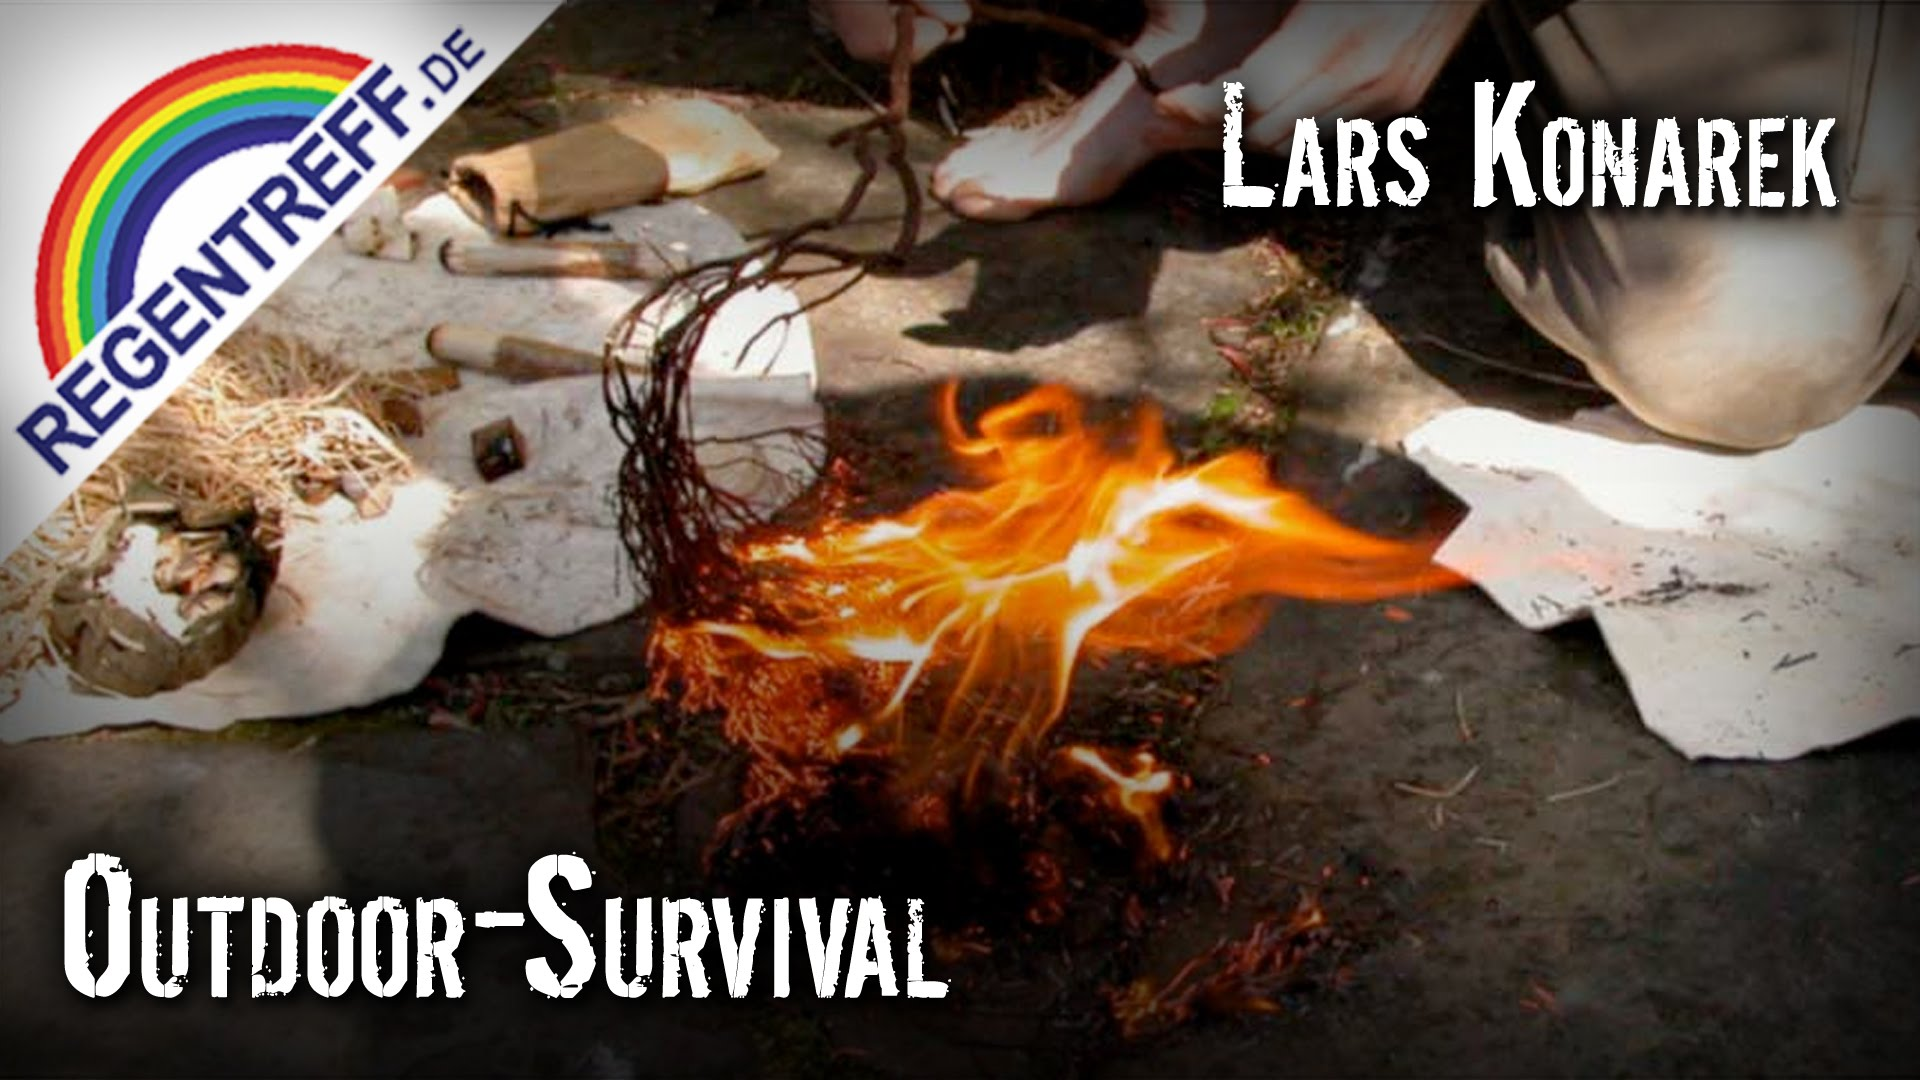 Lars Konarek – Outdoor Survival